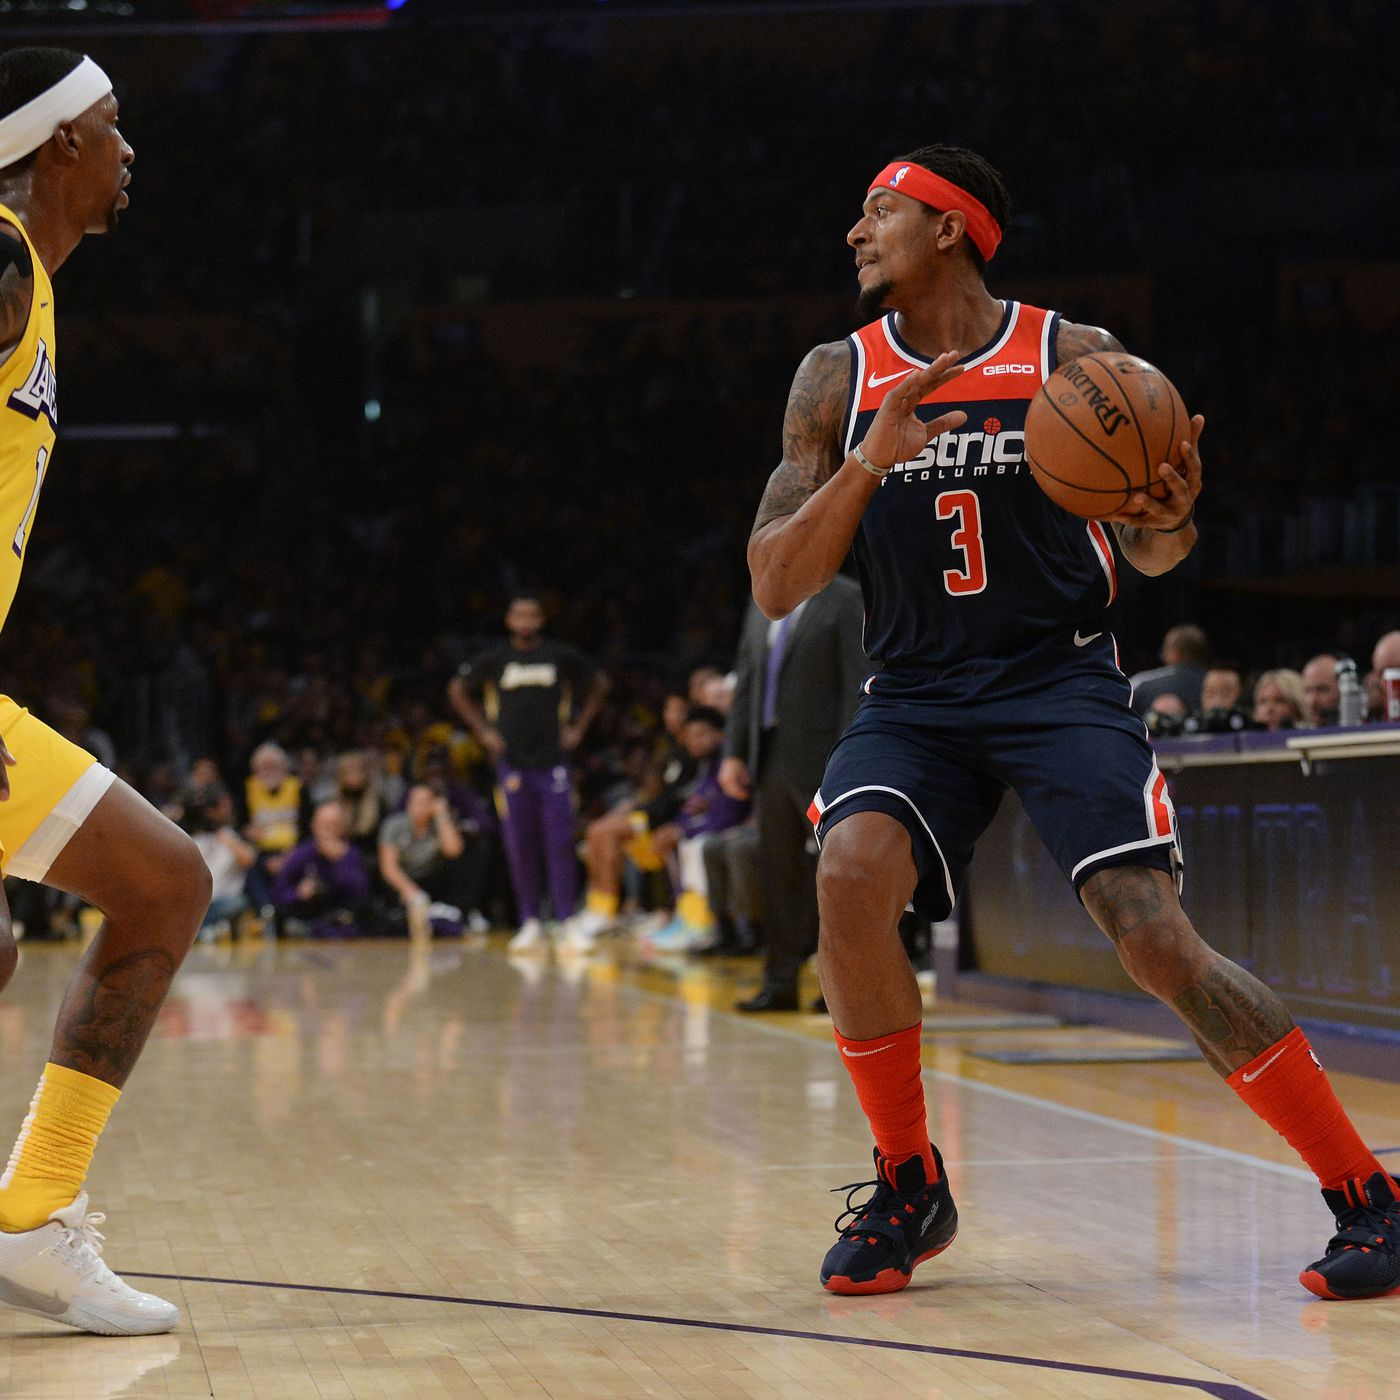 NBA preview: Wizards play Lakers on Monday - Bullets Forever